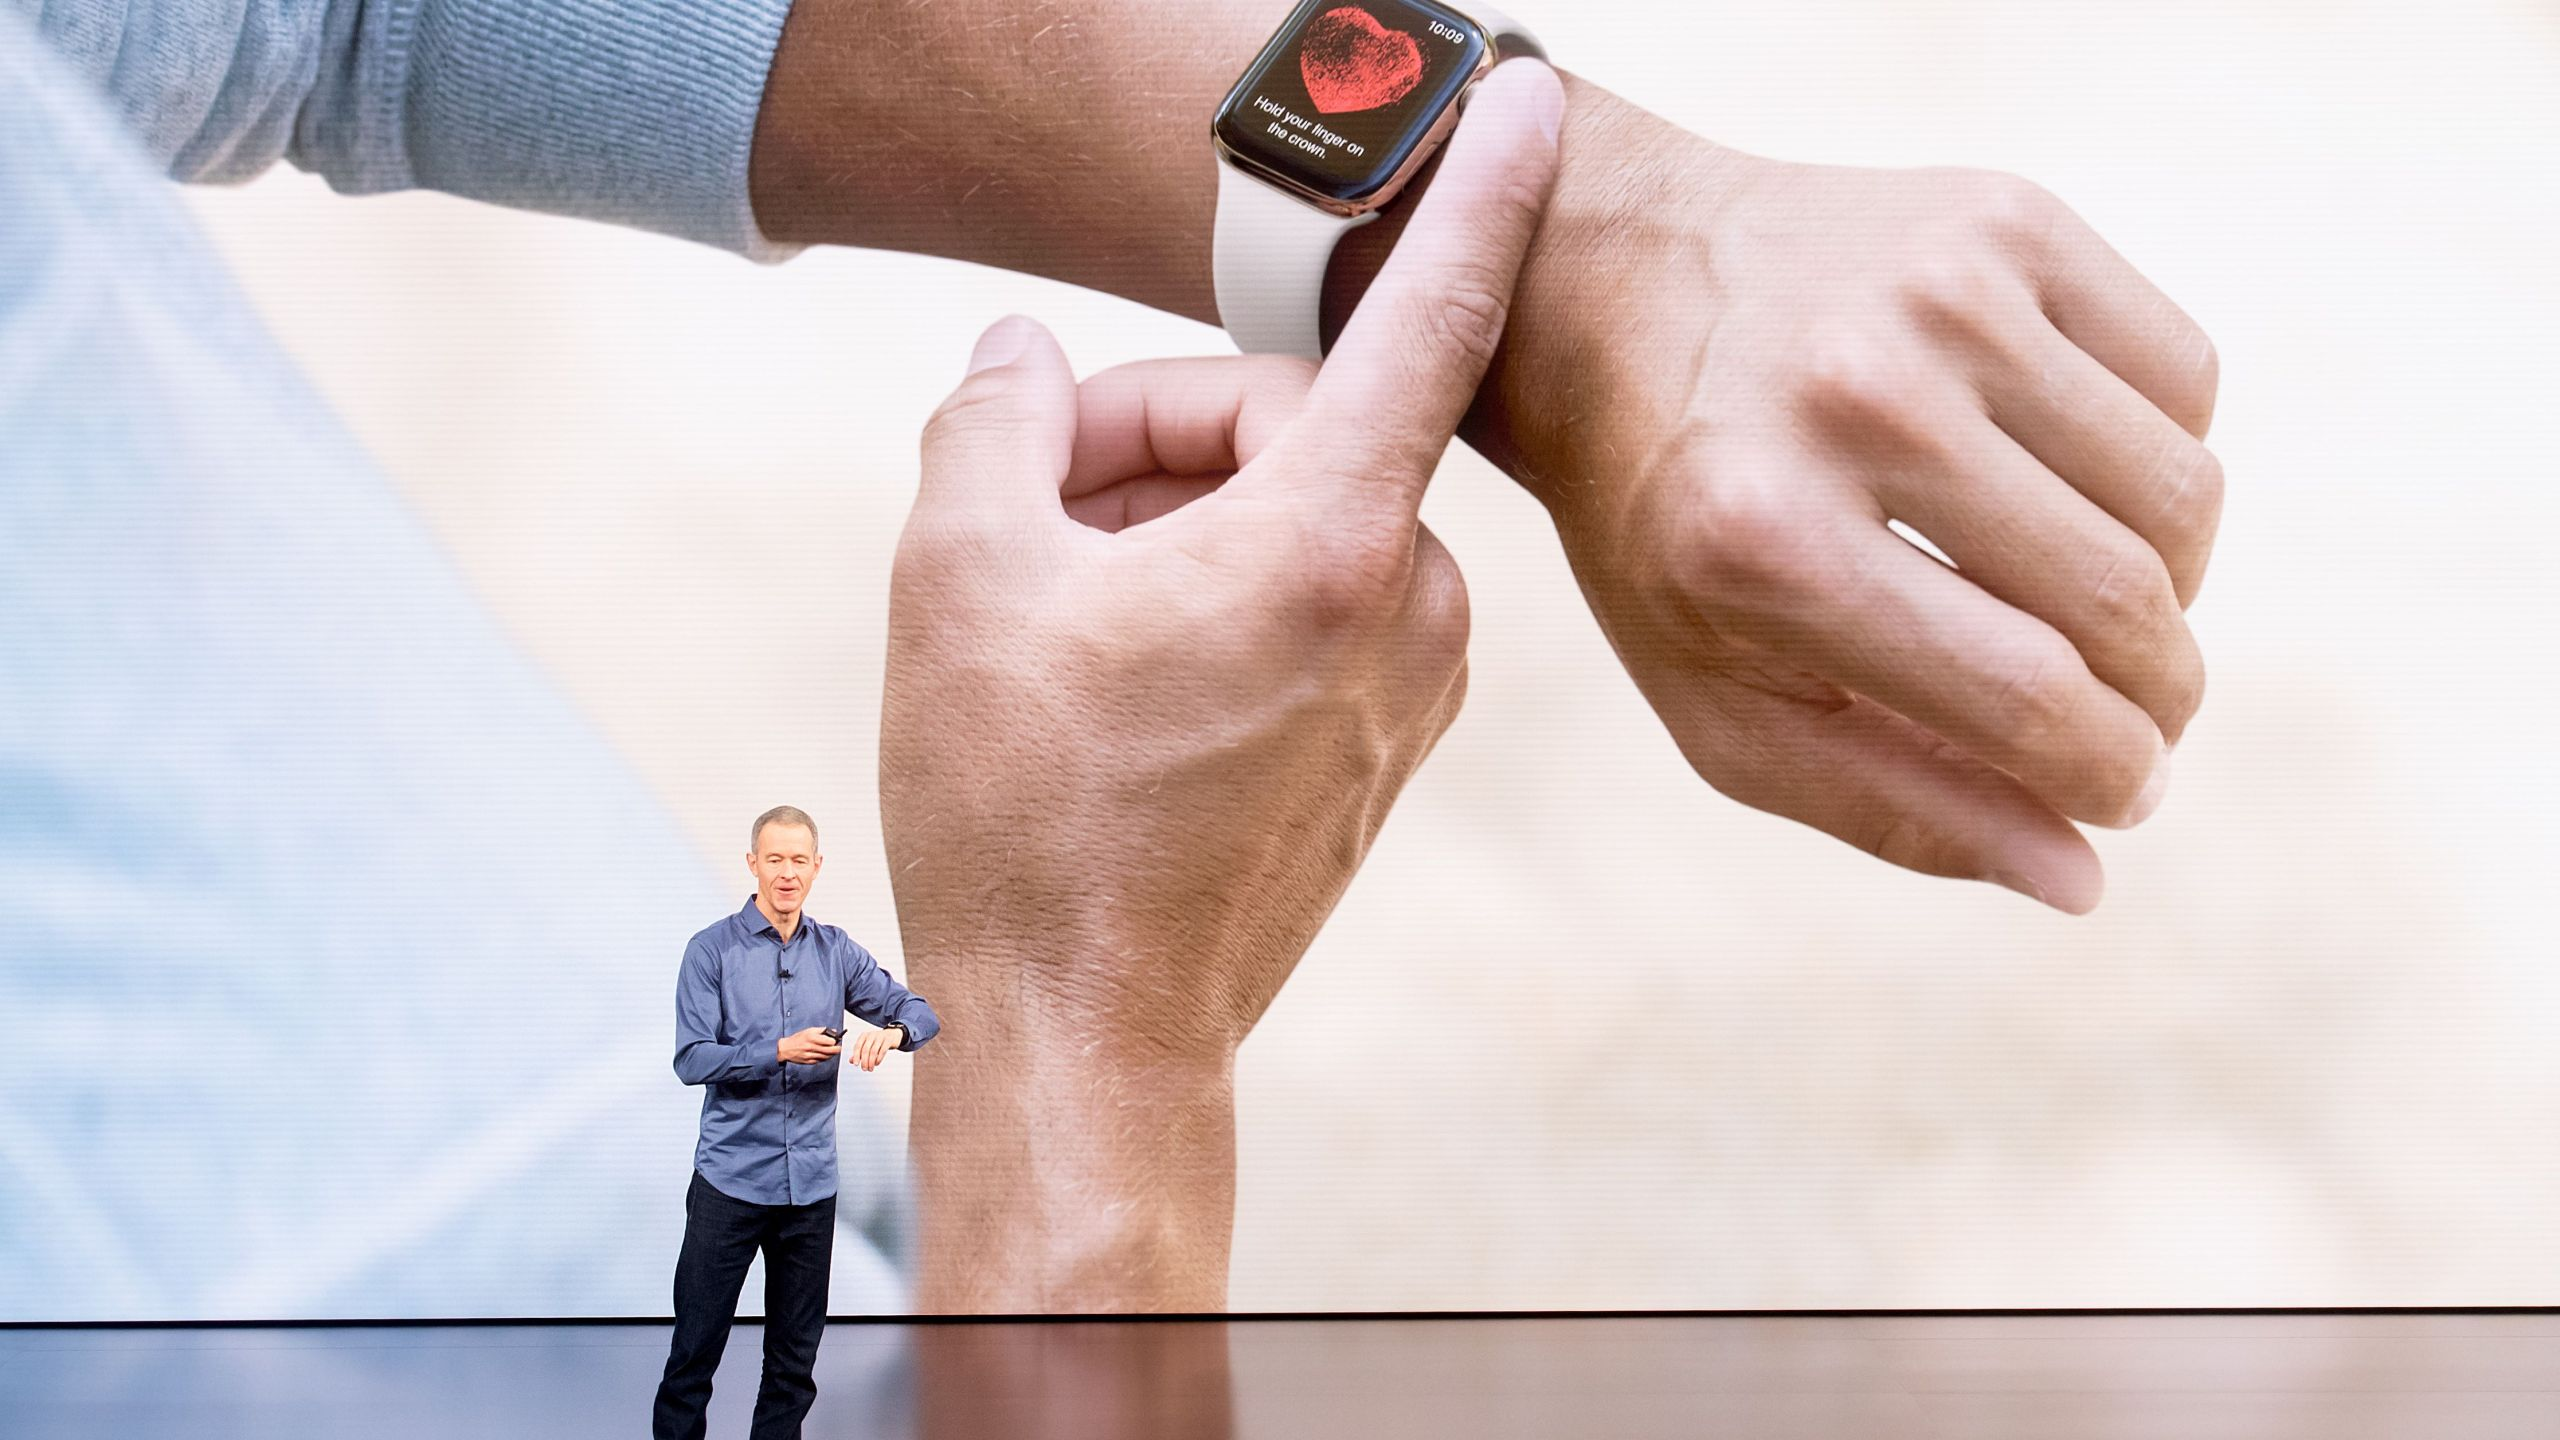 Apple COO Jeff Williams discusses Apple Watch Series 4 during an event on Sept. 12, 2018 in Cupertino. (Credit: NOAH BERGER/AFP/Getty Images)